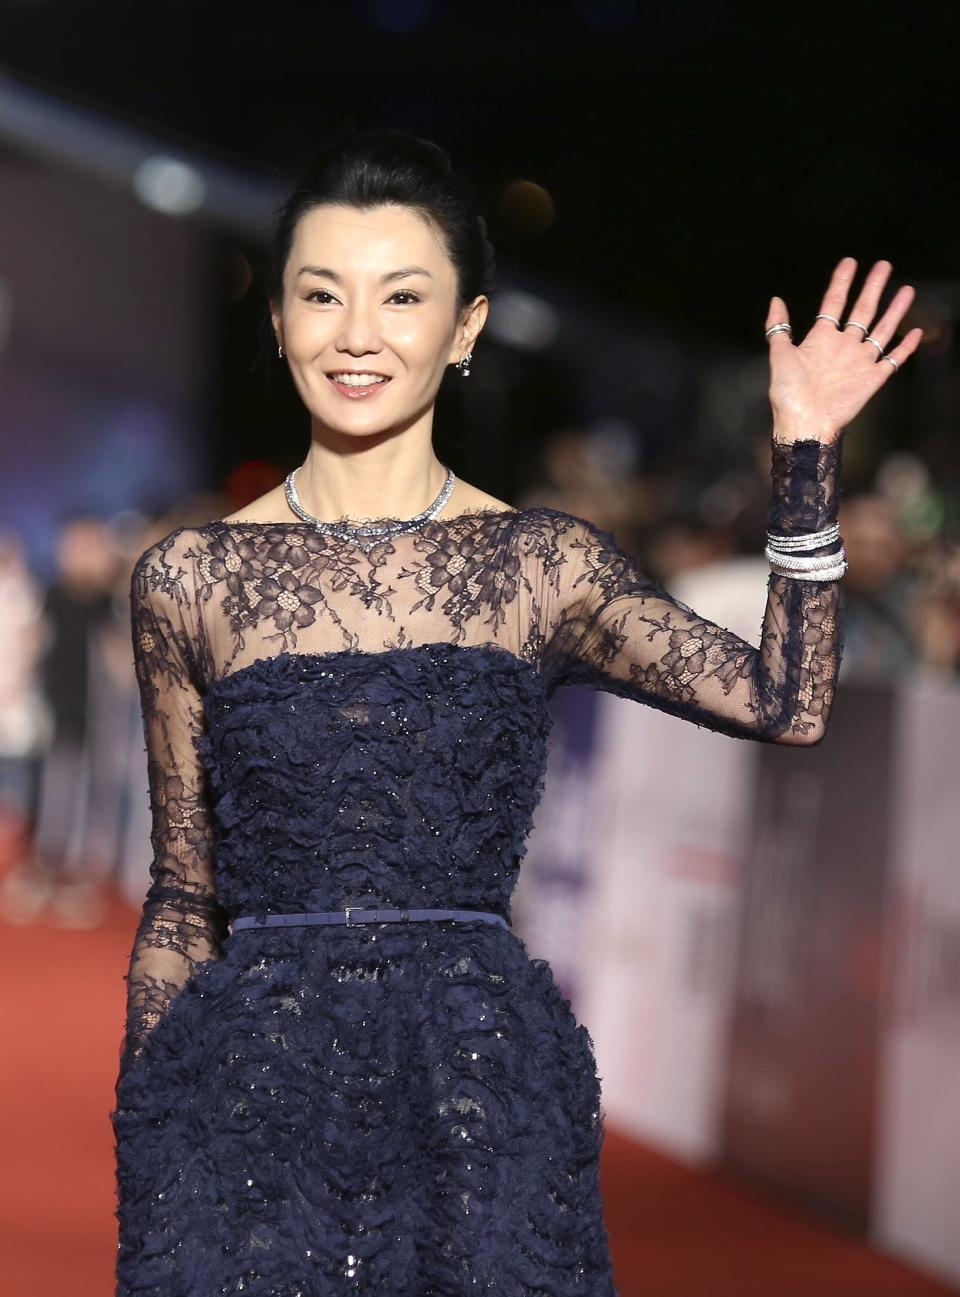 Hong Kong actress Maggie Cheung poses for photographers on the red carpet at the 50th Golden Horse Film Awards in Taipei November 23, 2013. REUTERS/Patrick Lin (TAIWAN - Tags: ENTERTAINMENT)